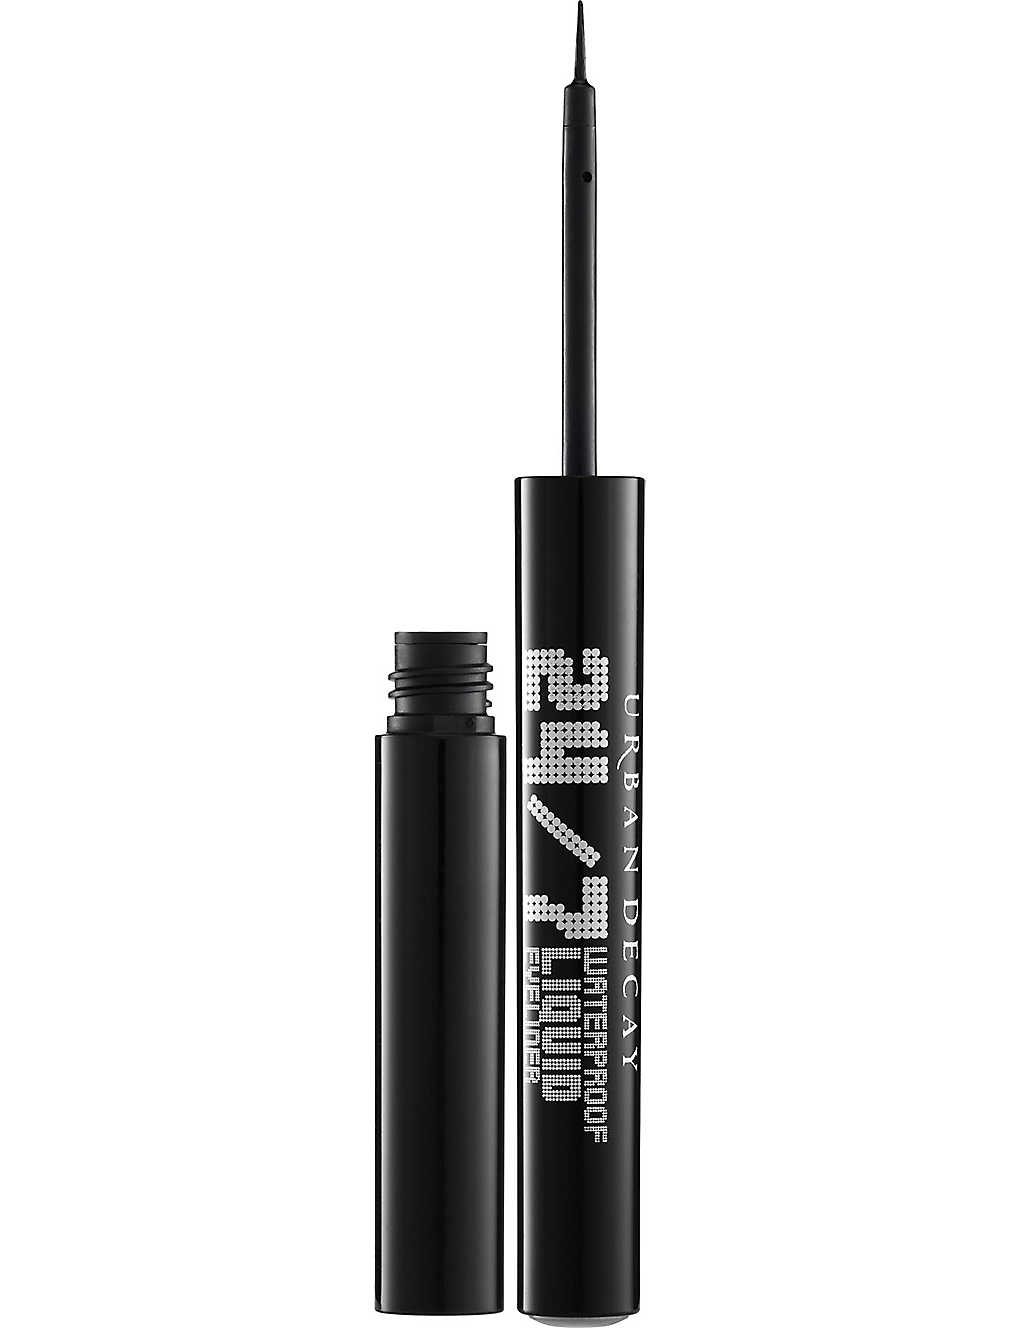 URBAN DECAY: 24/7 waterproof liquid eyeliner